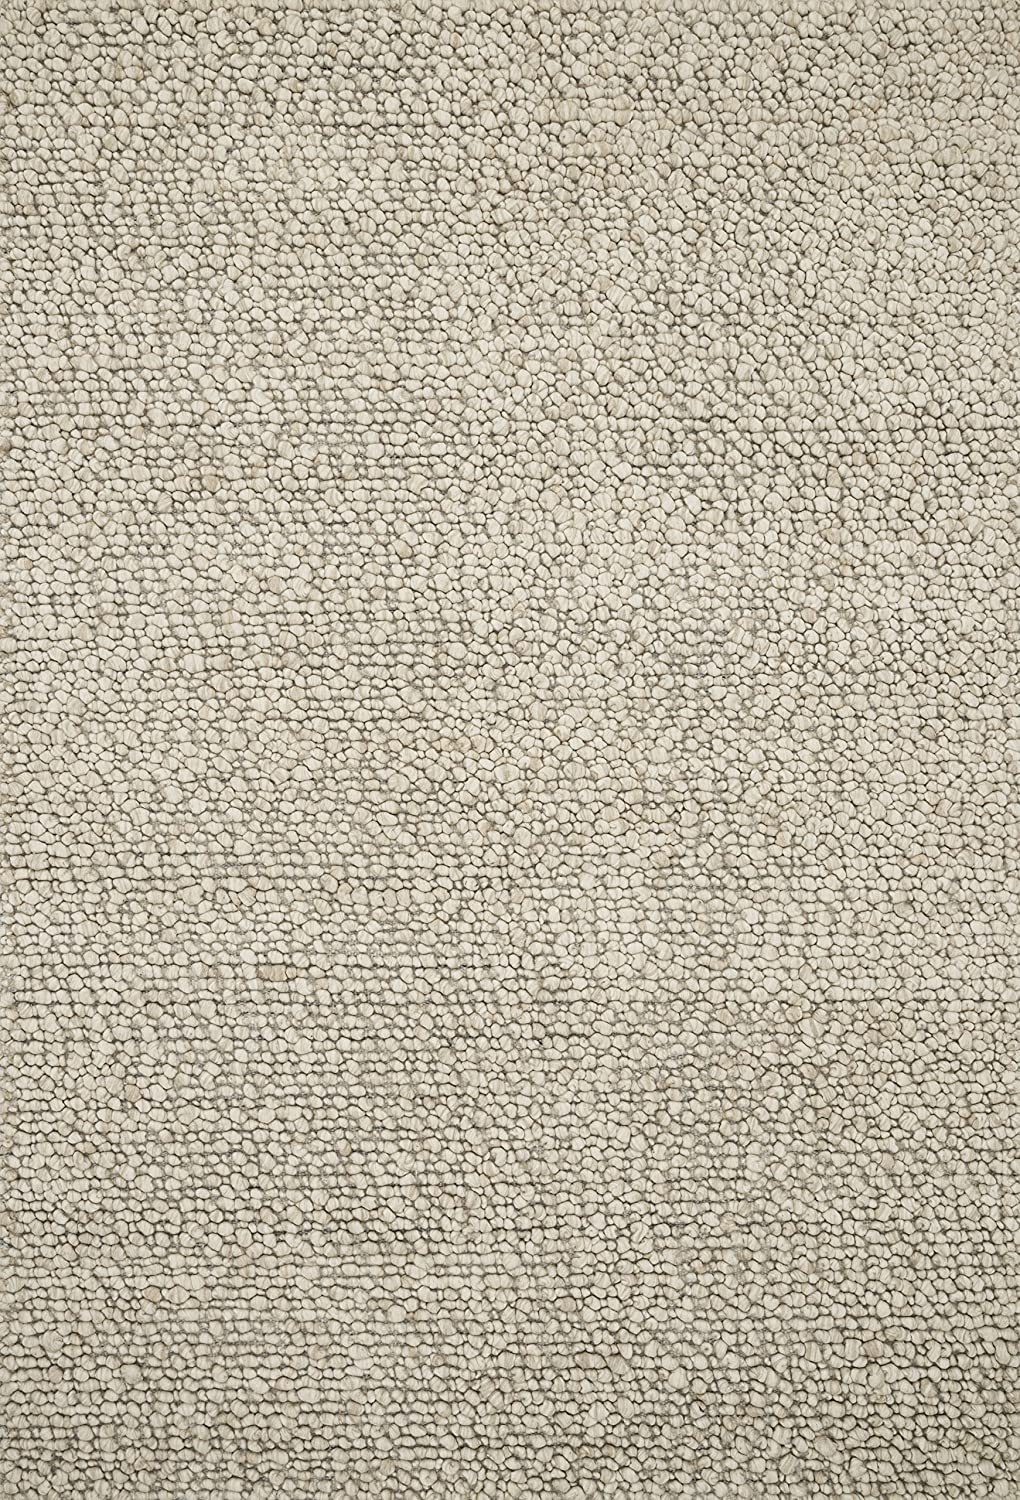 Ivory Loloi Quarry Collection Area Rug 2 x 3